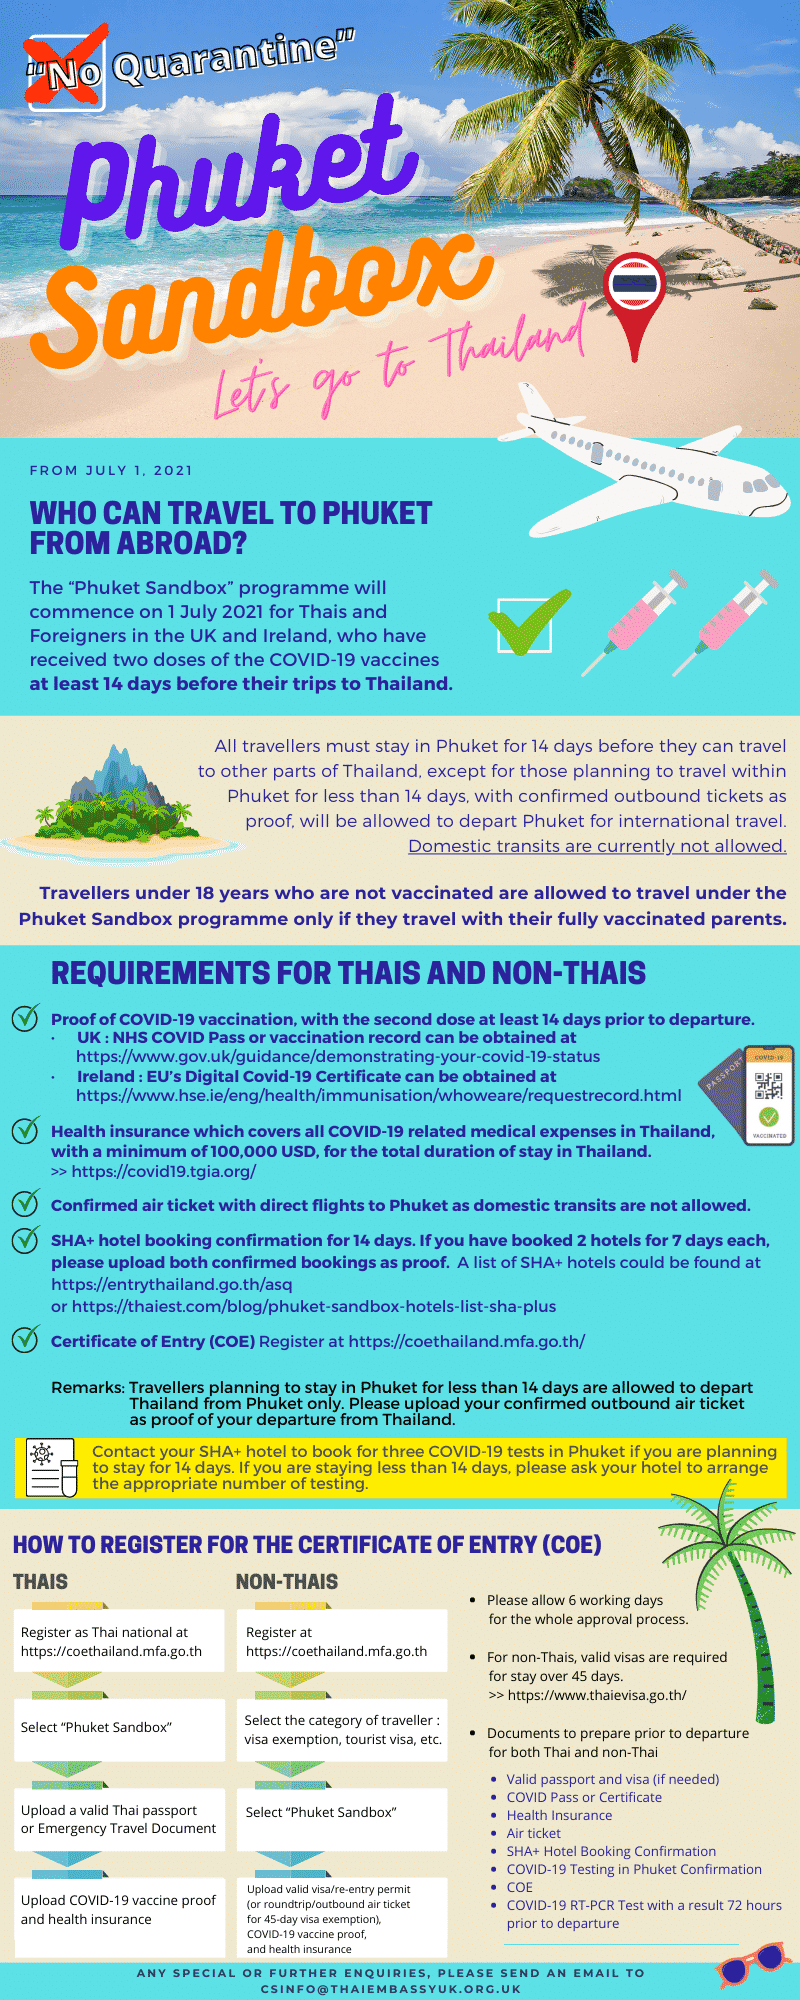 Covid -19 information if you intend to travel to Thailand